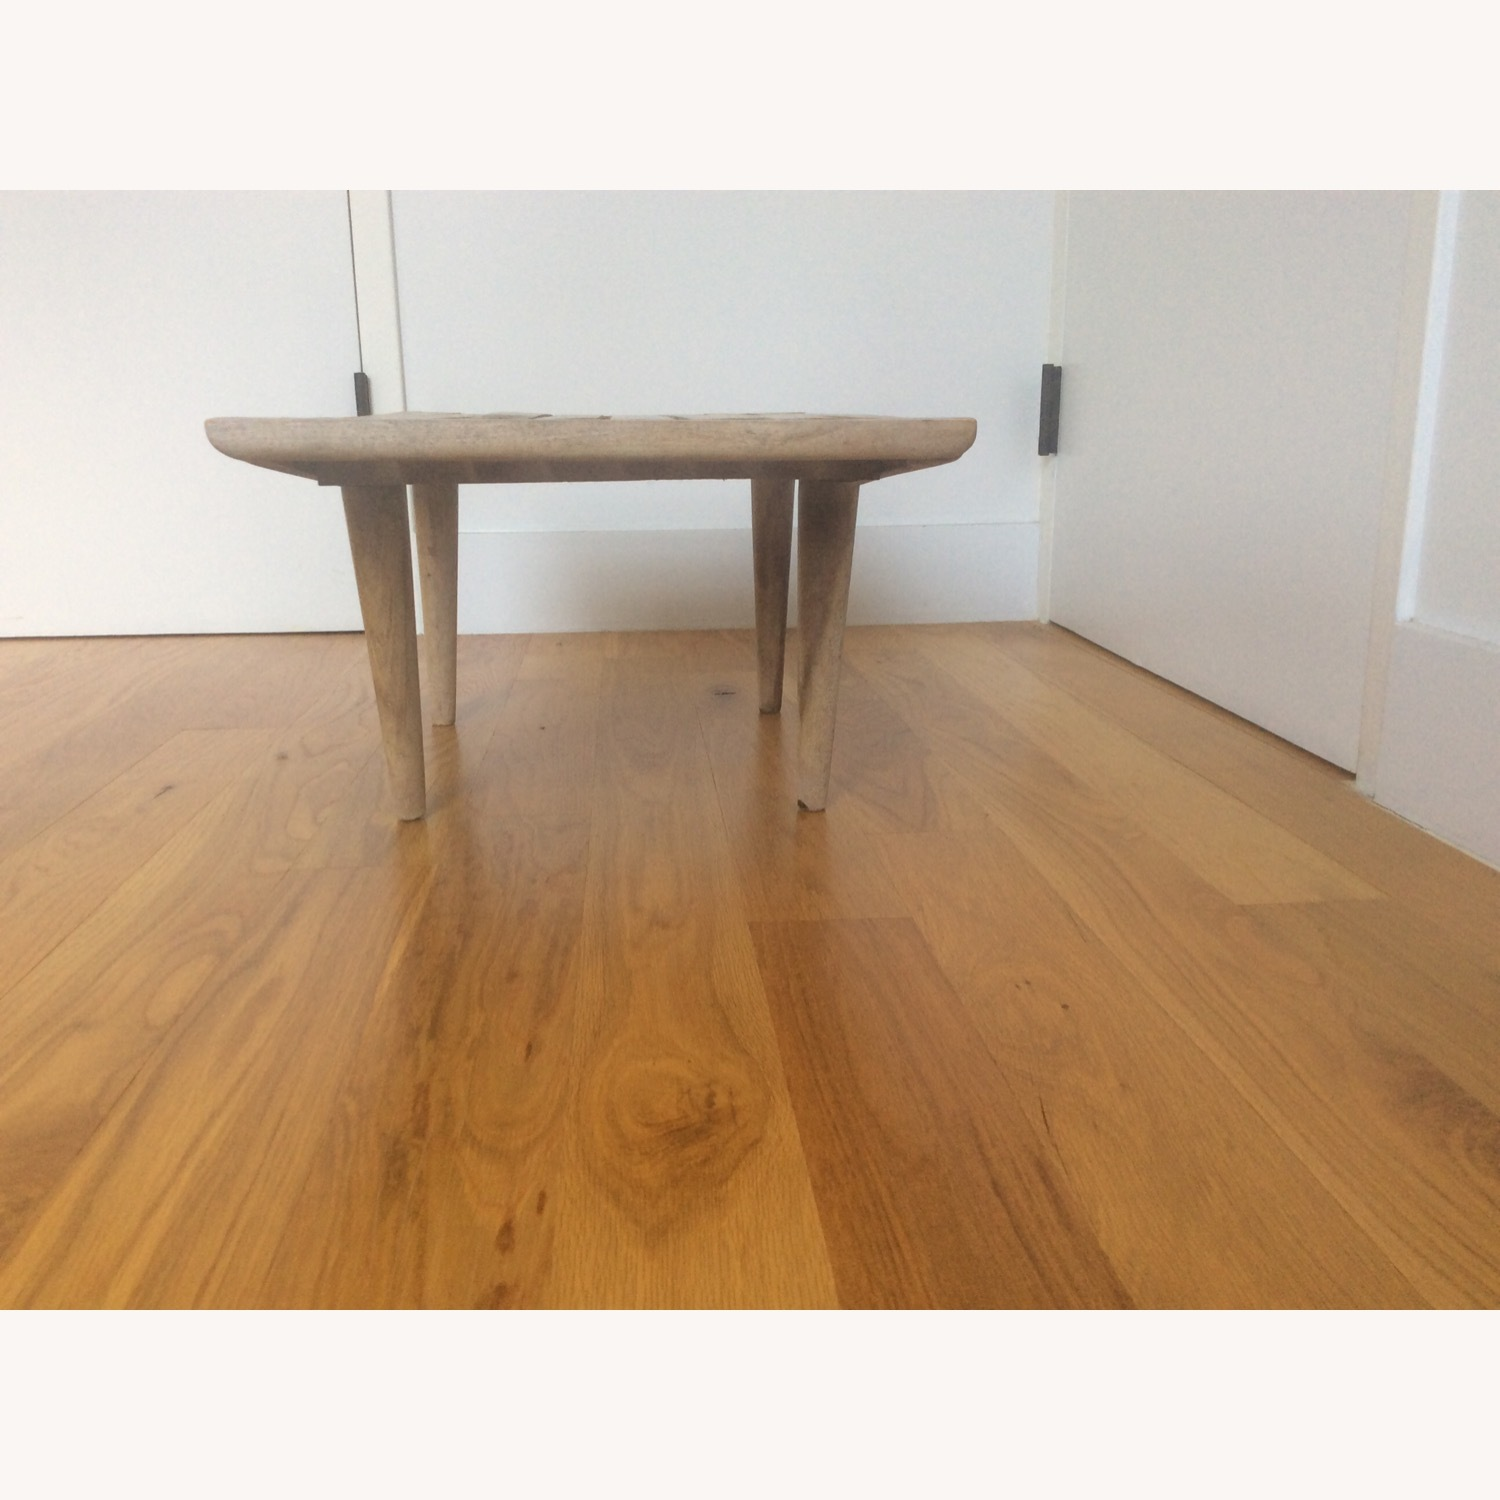 Vintage Wooden Coffee Table - image-3